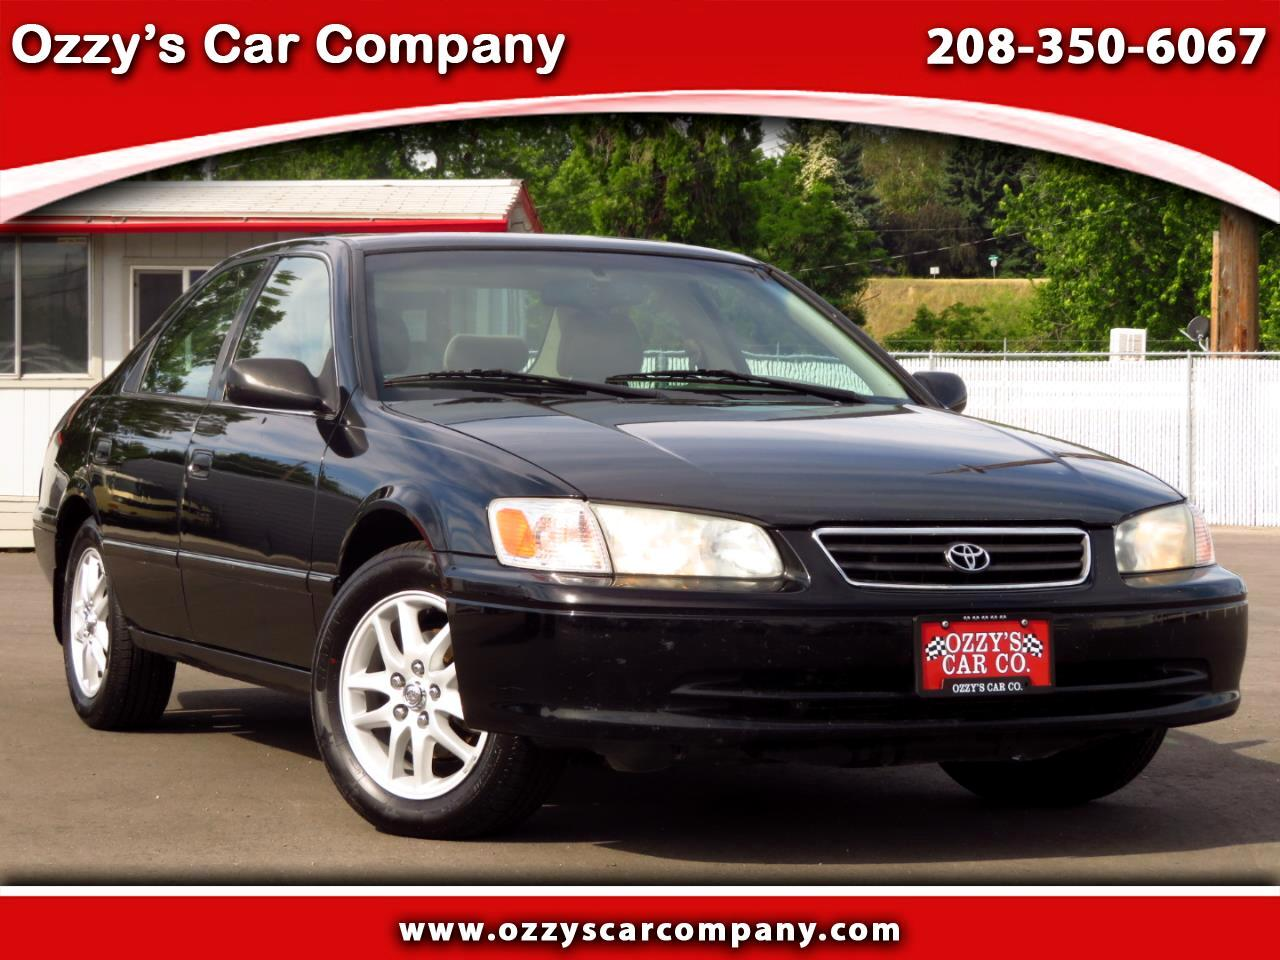 Toyota Camry 4dr Sdn XLE V6 Auto (Natl) 2001